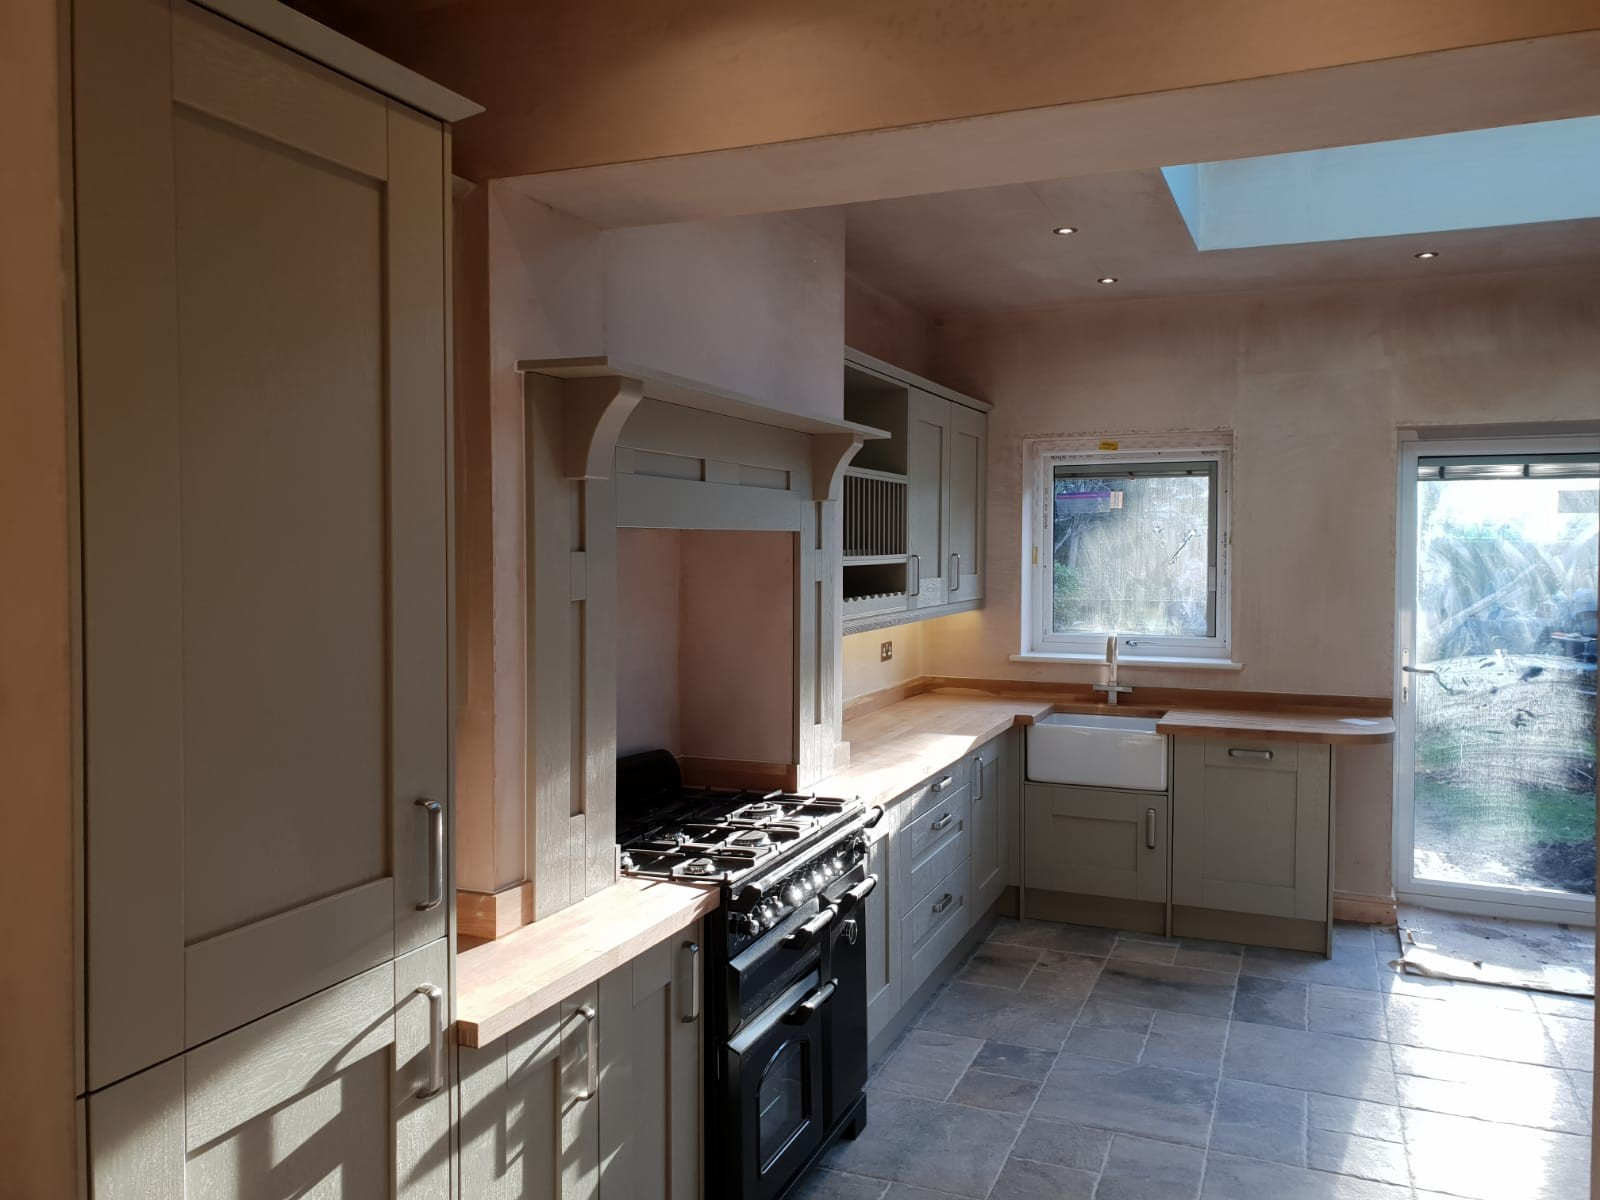 kitchen, remodel, design, installation, oven, worktops, tiles, roof lantern, spotlights